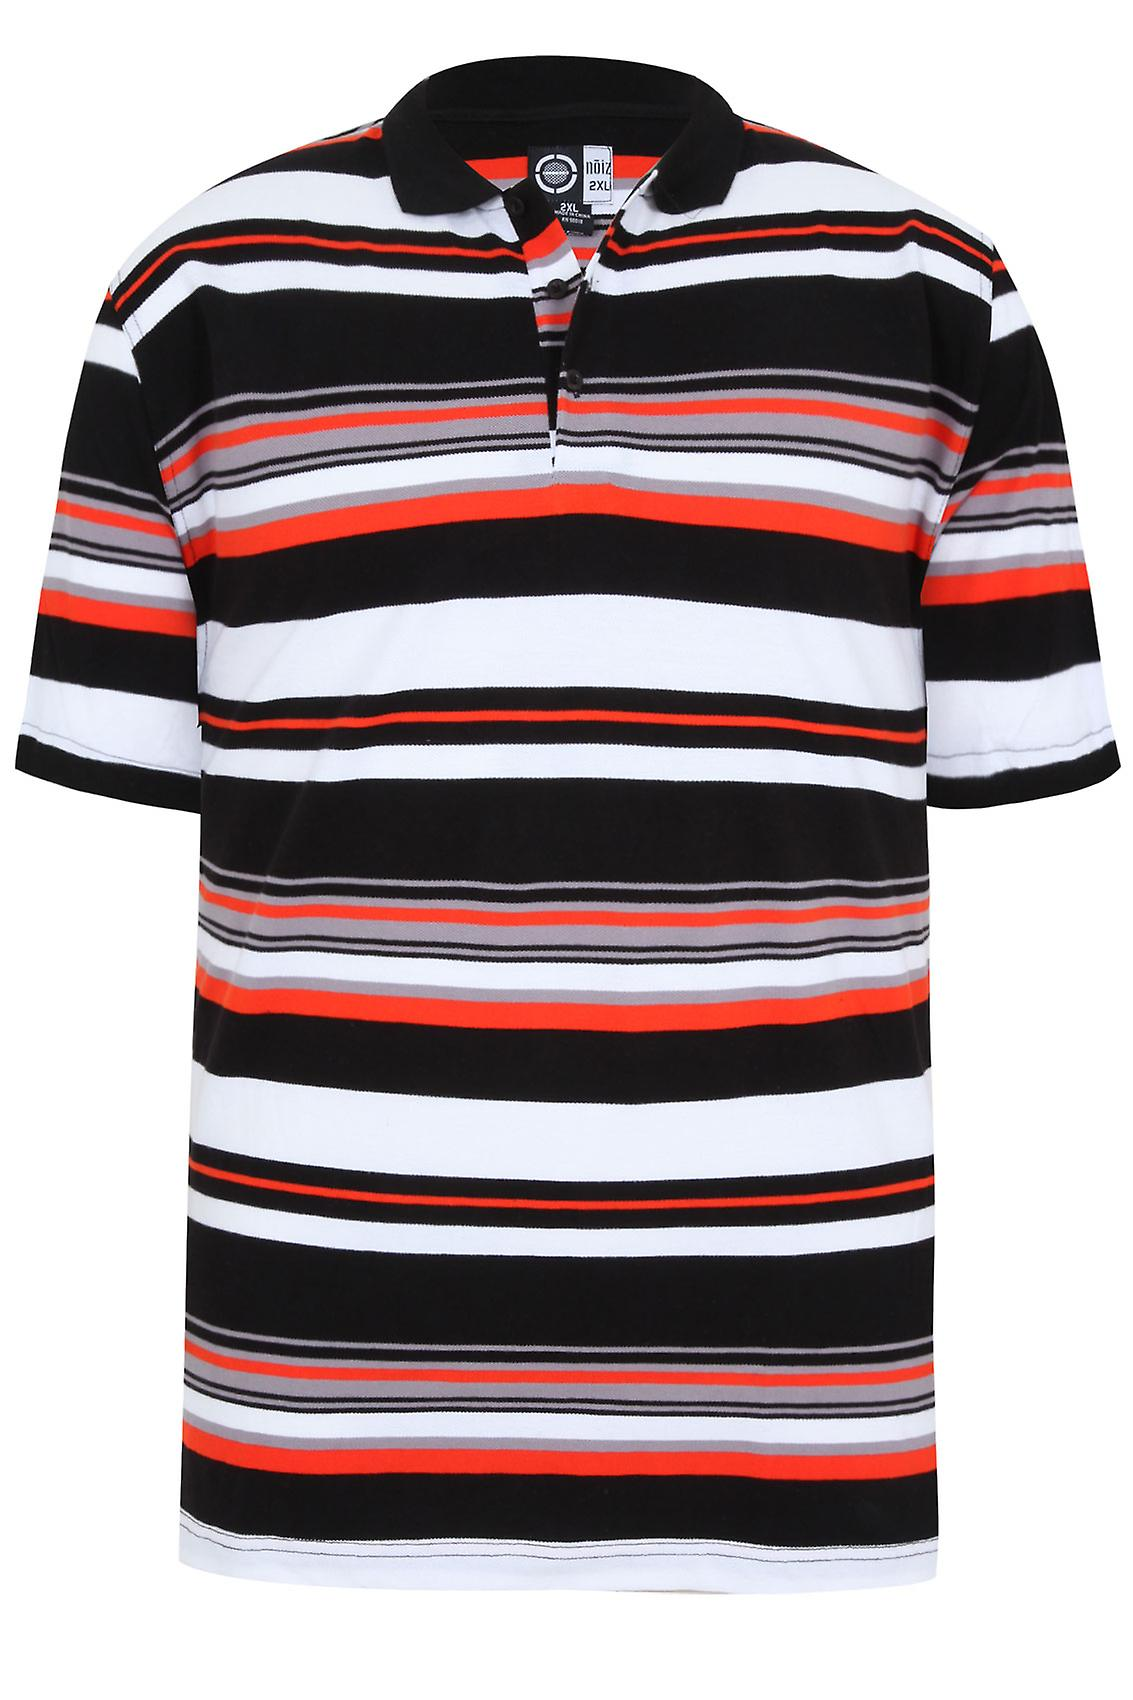 Black, White & Orange Striped Short Sleeve Polo Shirt